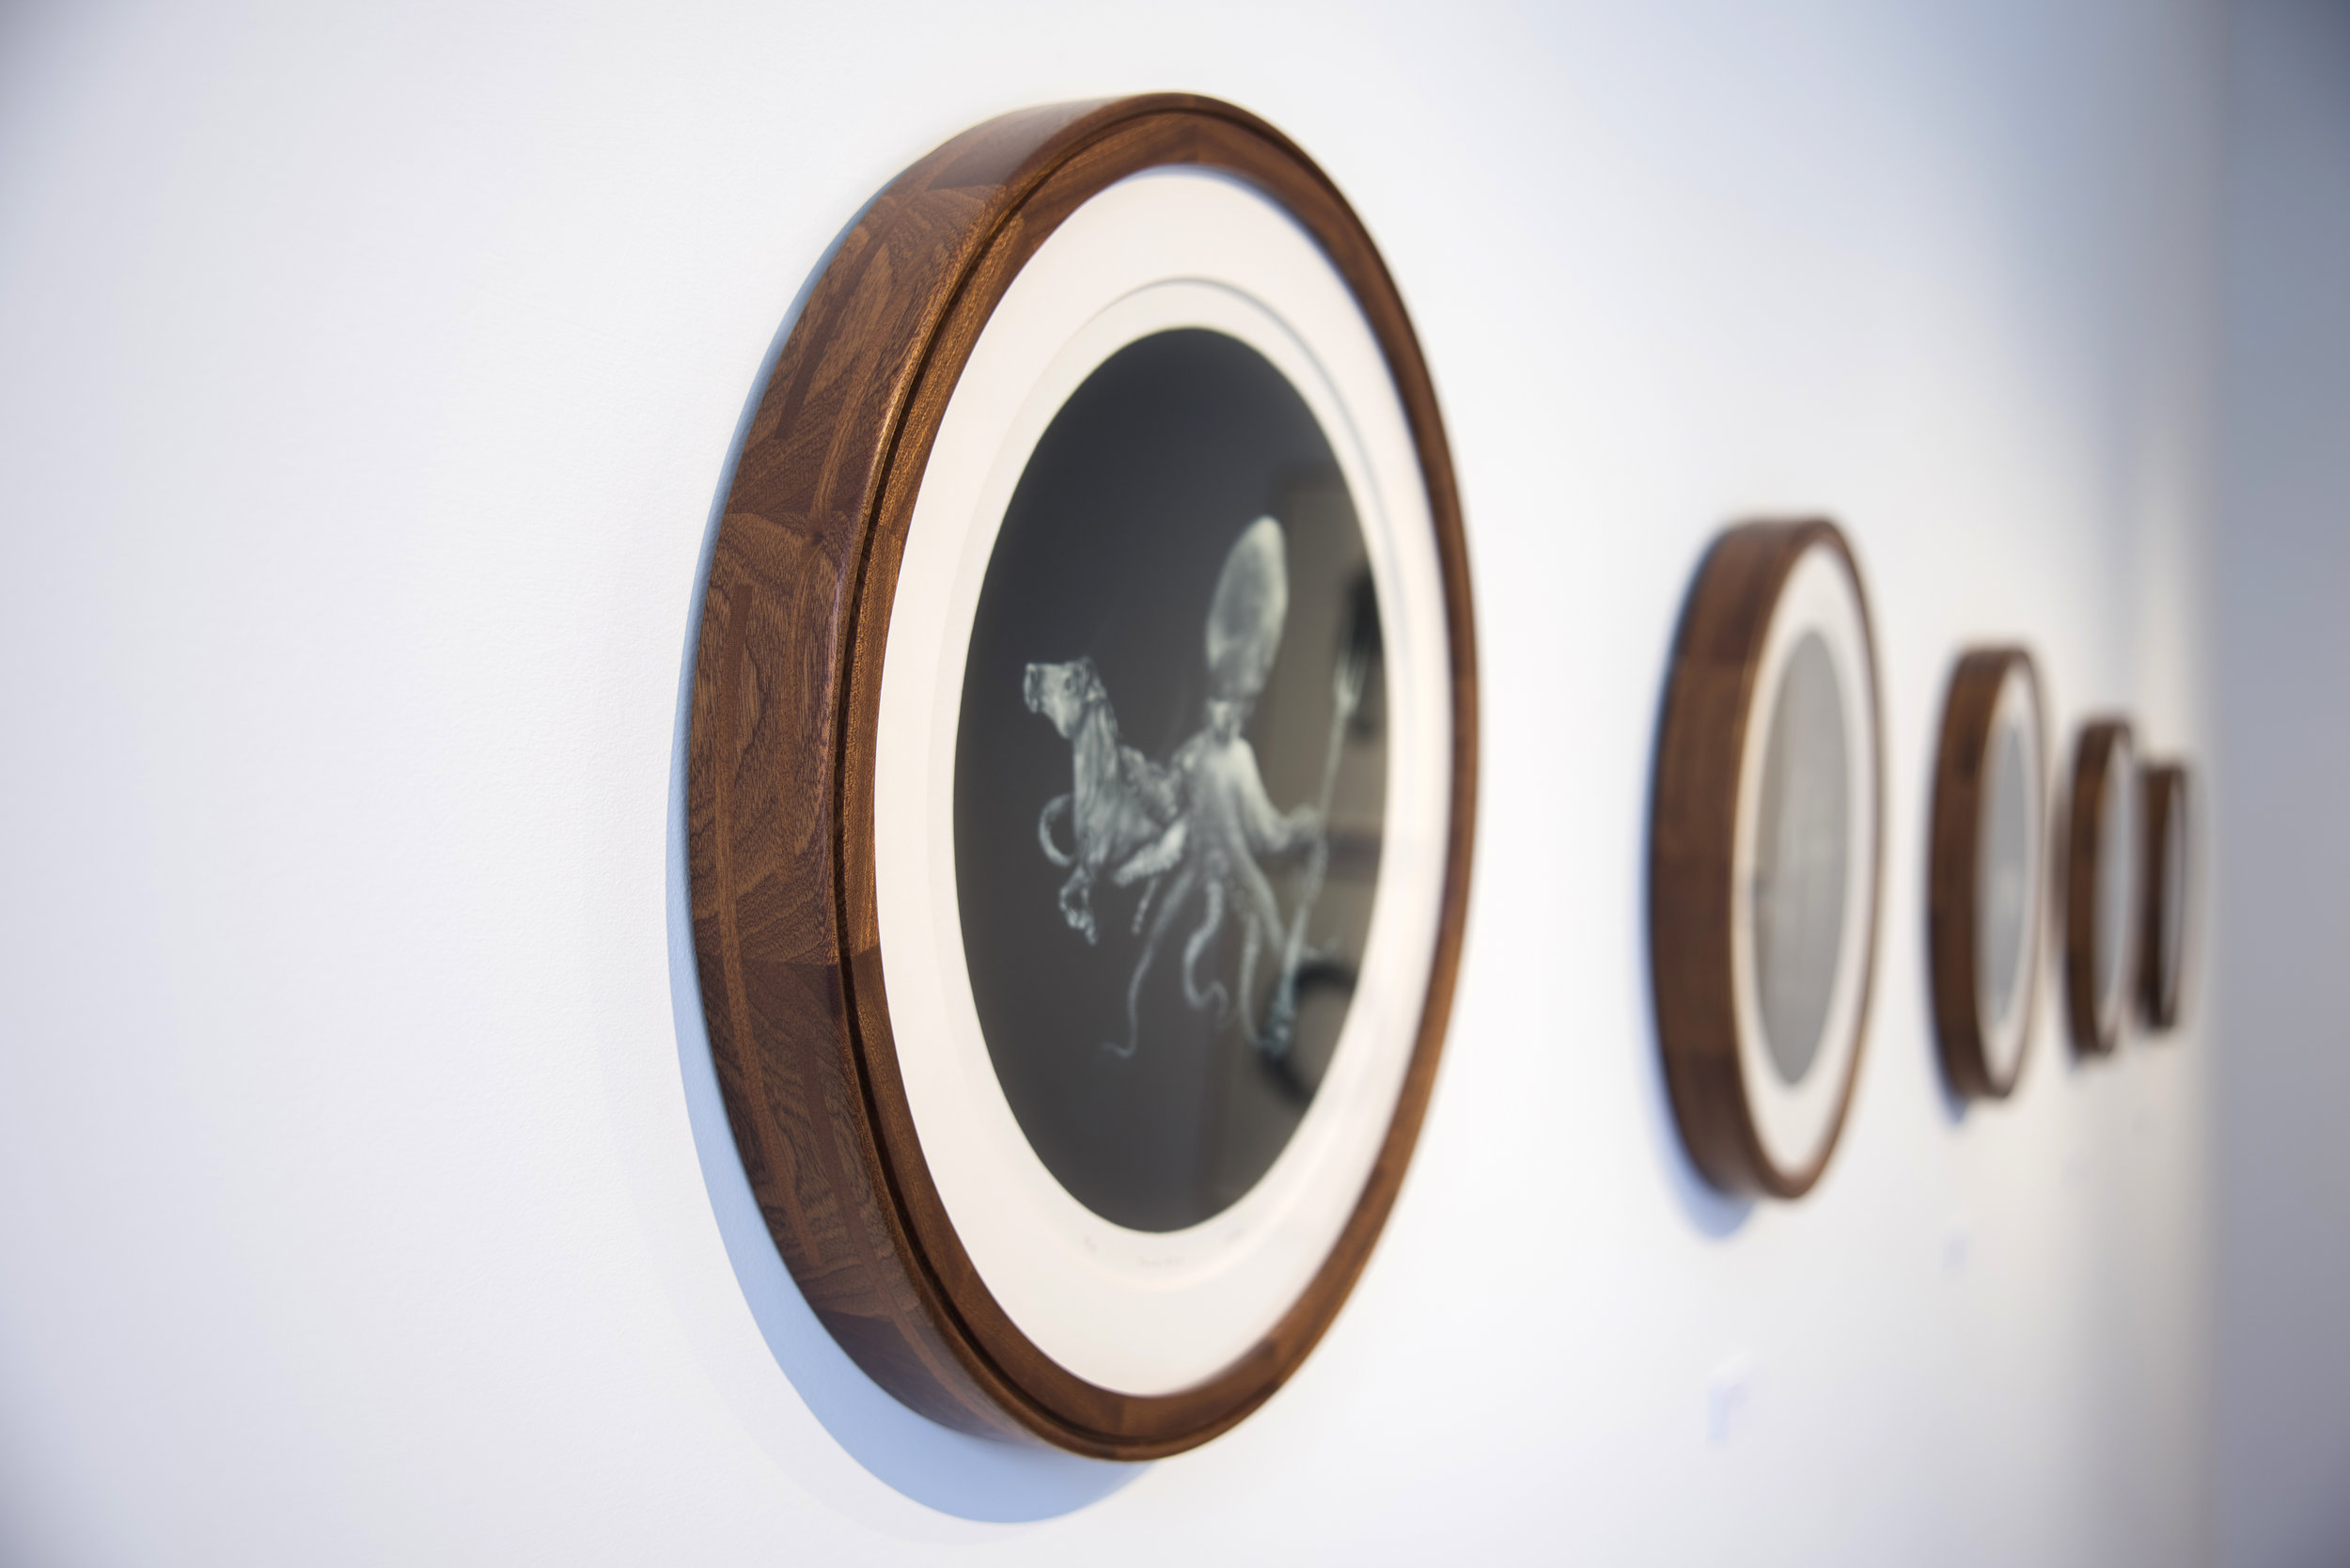 Custom Sapele frames for mezzotint prints by artist  Laine Groeneweg